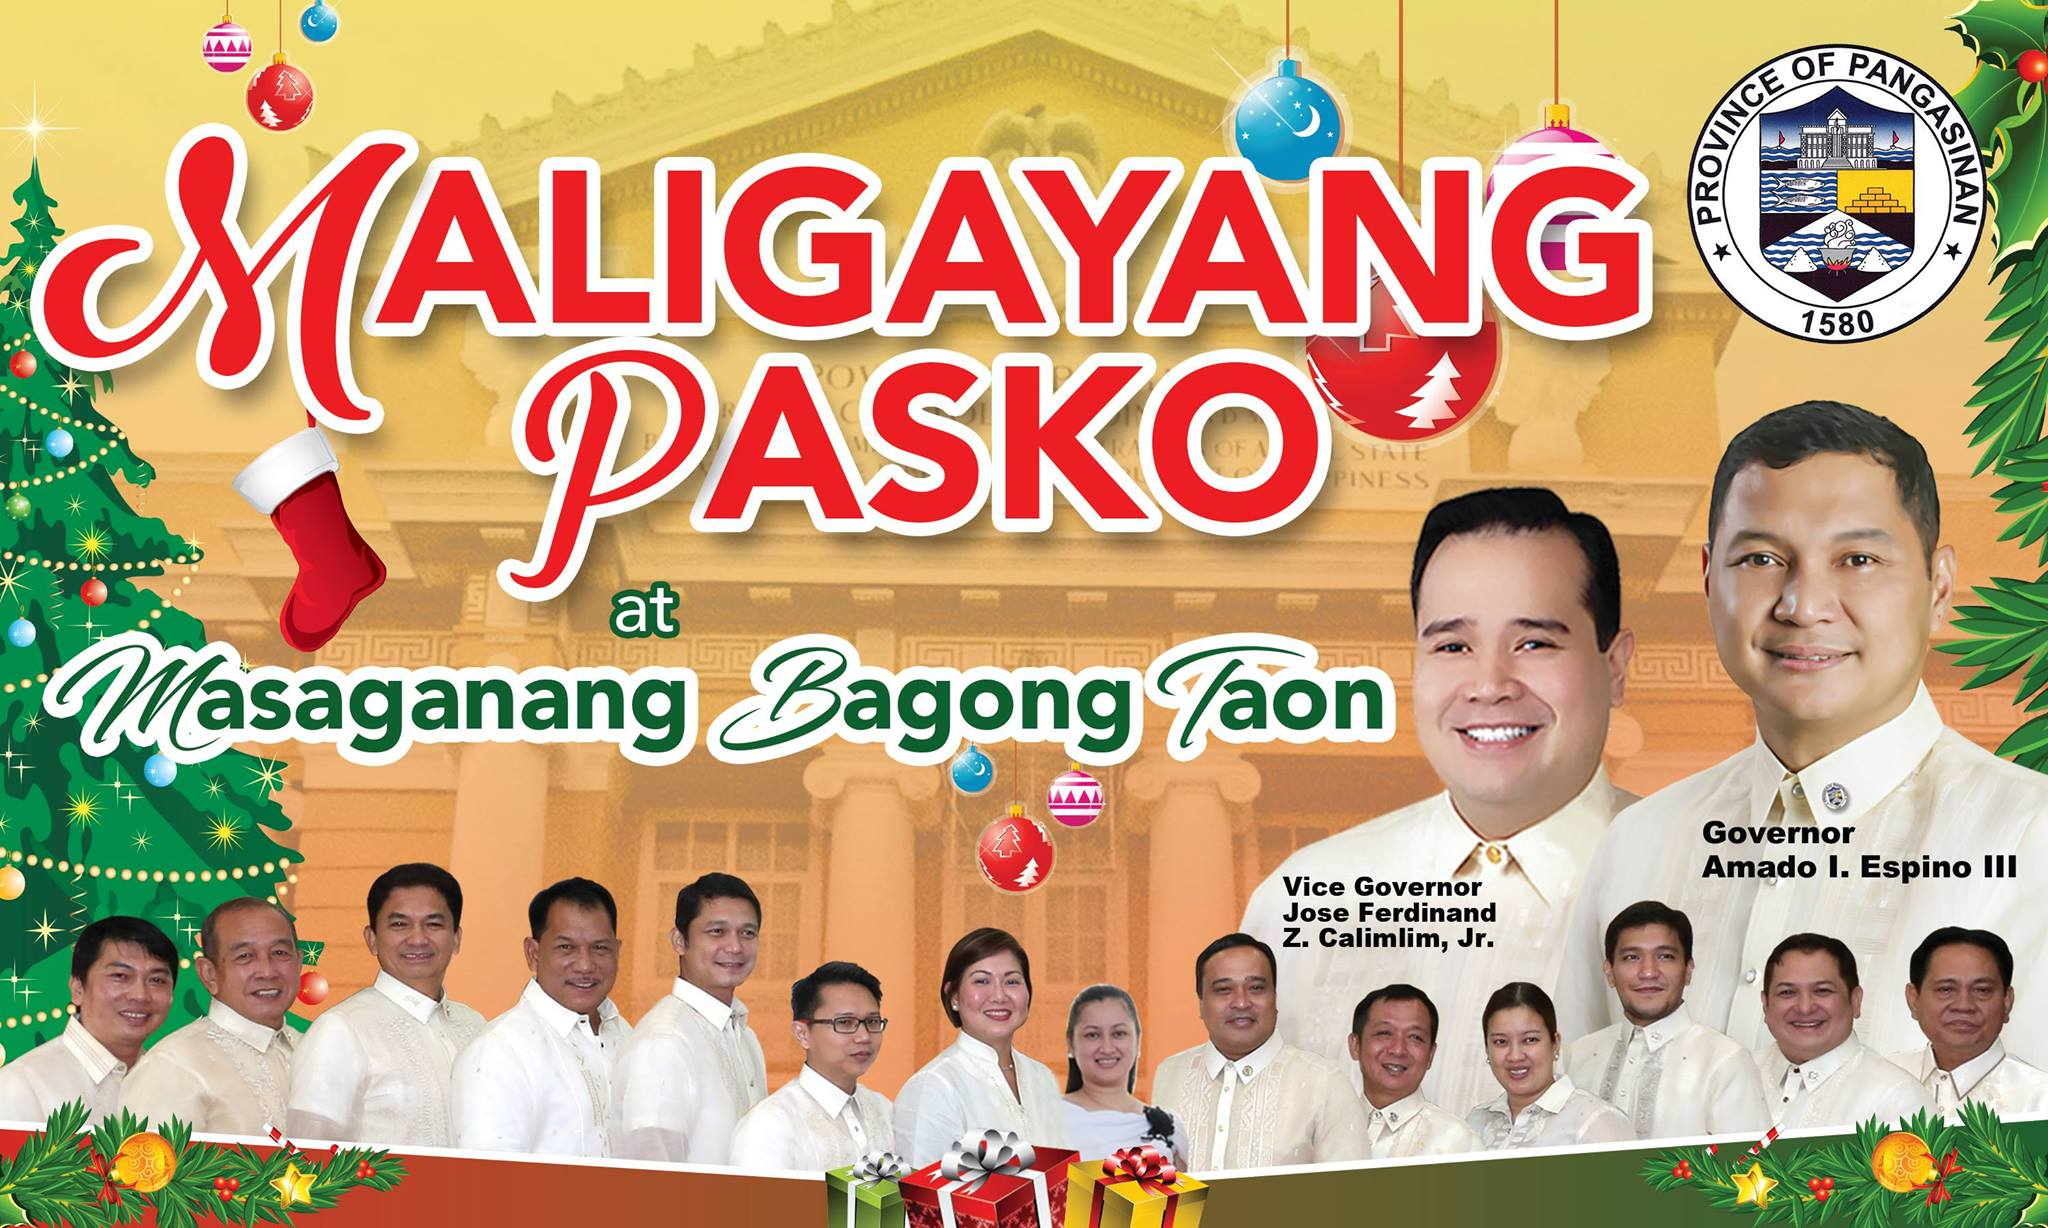 The provincial officials convey its Christmas and New Year's greetings to the people of Pangasinan